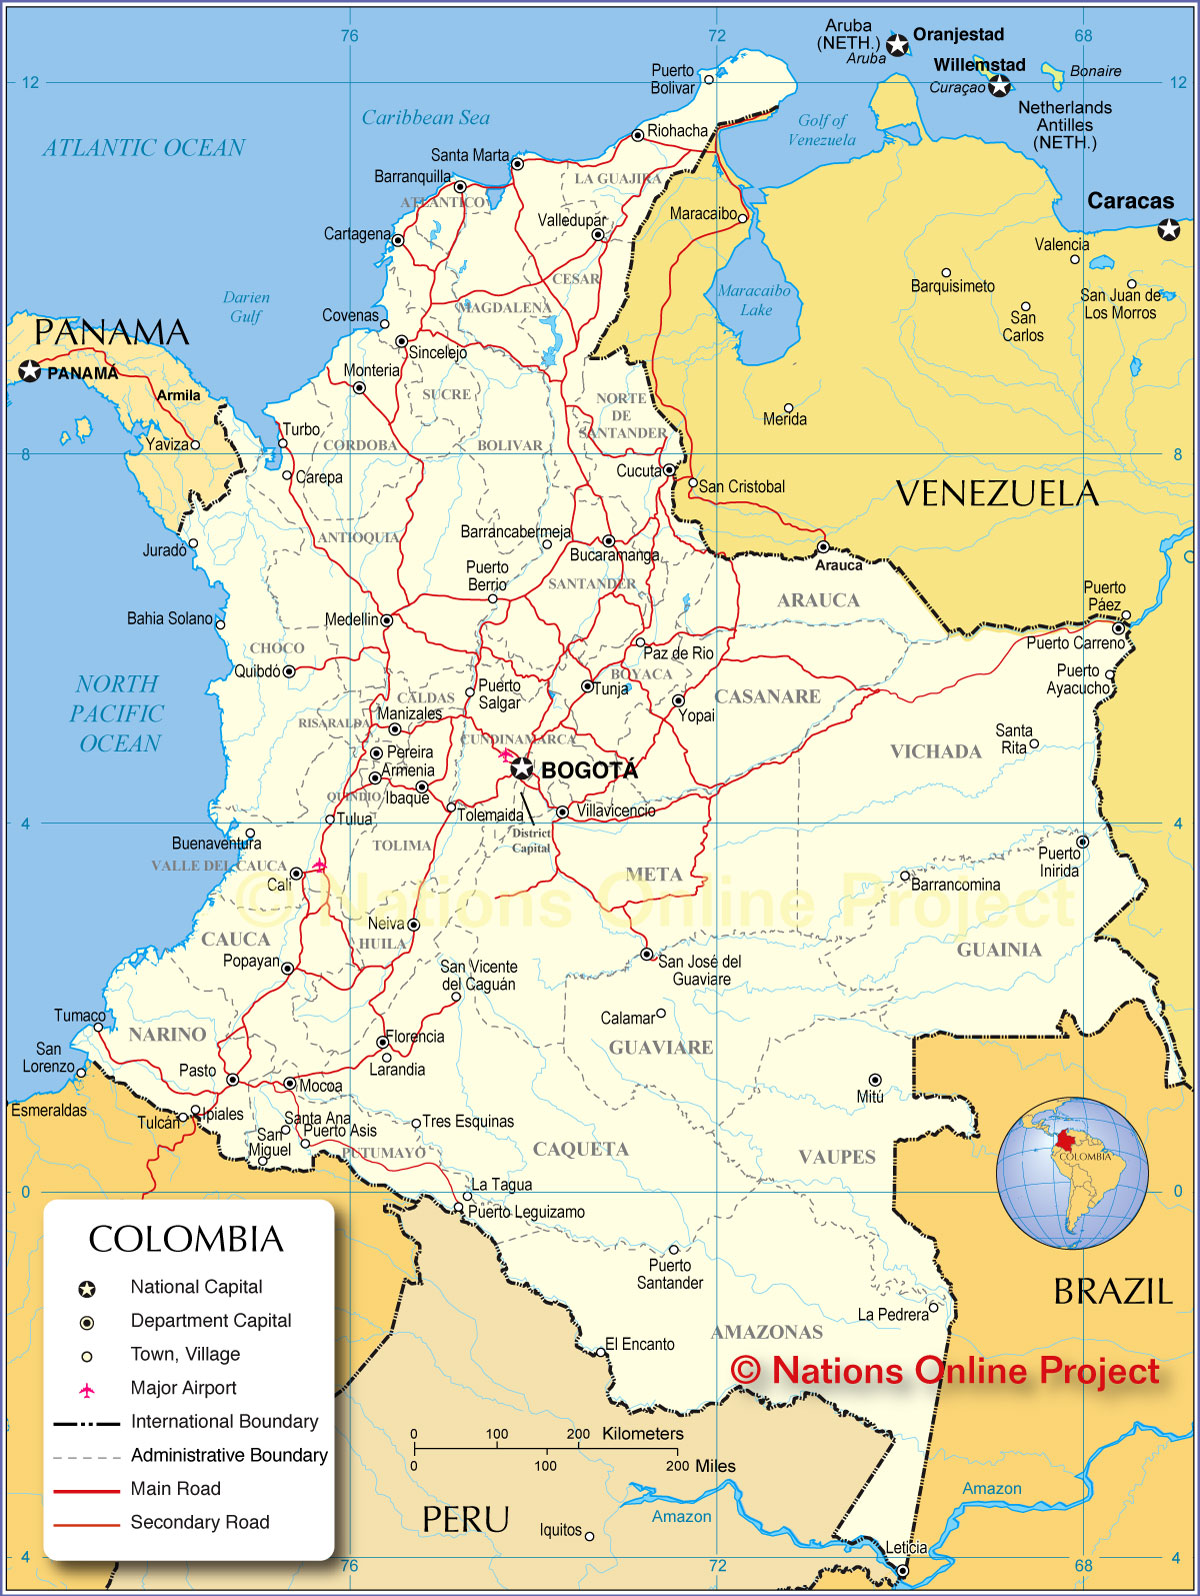 Map Of Colombia Nations Online Project - Colombia map